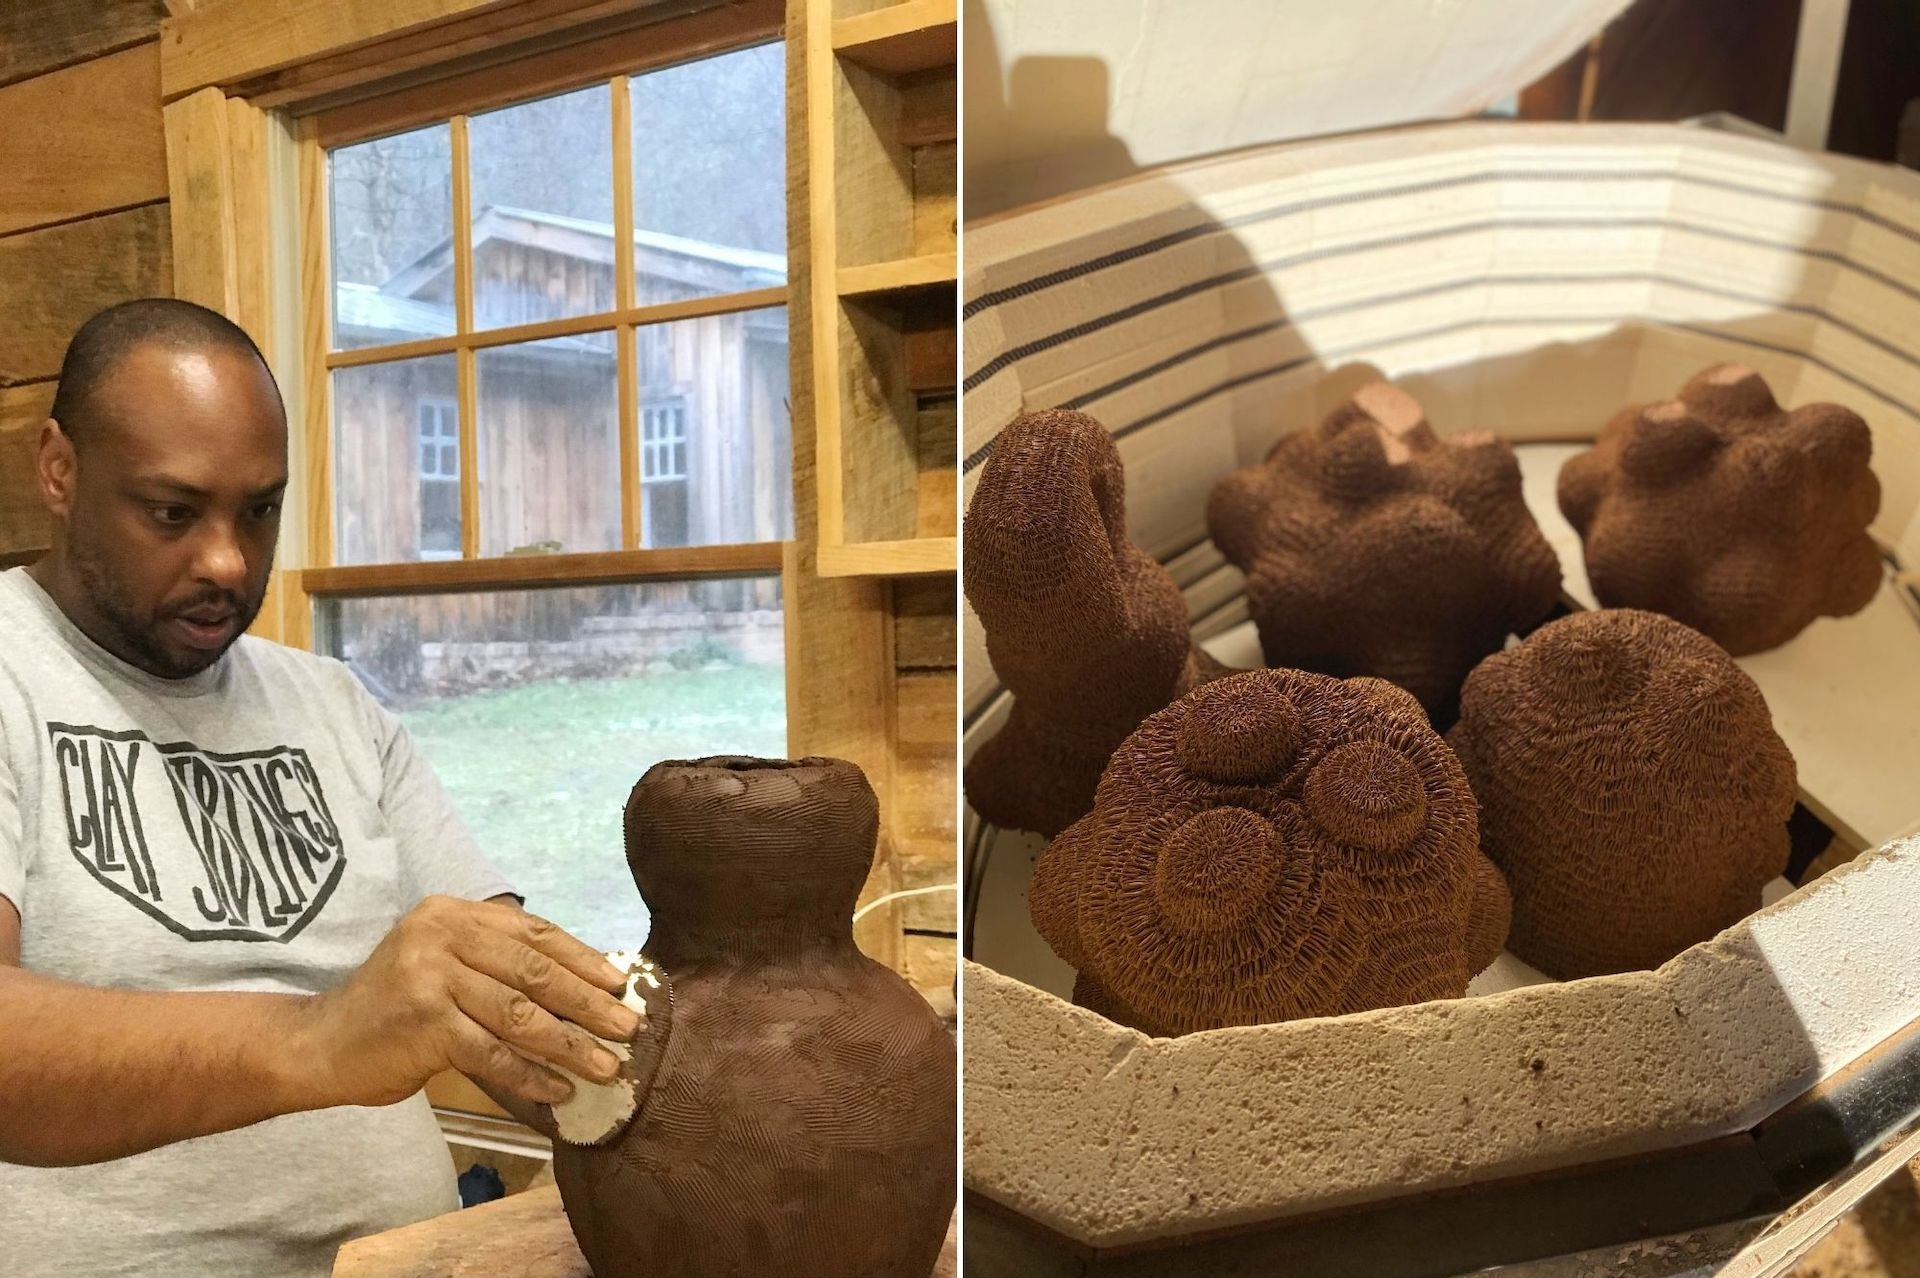 Hayes creates a form, and clay sculptures are loaded in the kiln, ready to be fired. Both photos taken during Hayes' Township10 residency in the Blue Ridge Mountains. Photos © Kyle Lawson (left) and Donté Hayes (right); courtesy of Donté Hayes